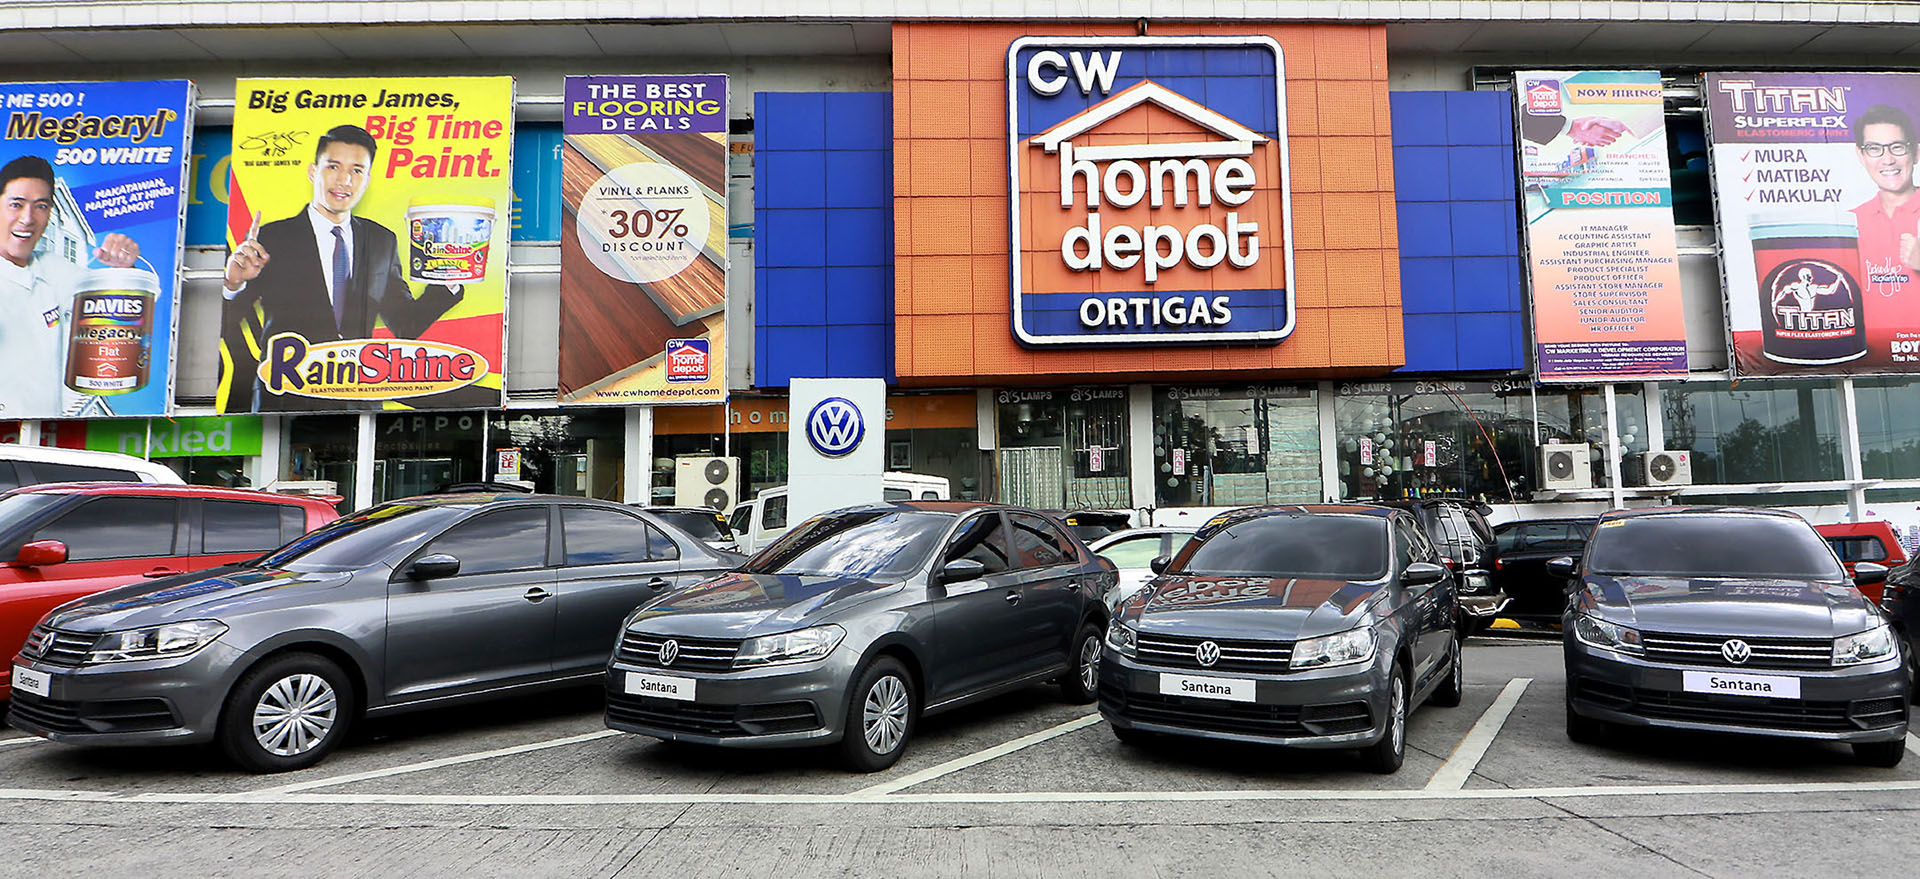 Volkswagen Philippines Turns Over Santana Subcompact Sedans To Cw Home Depot Go Flat Out Ph